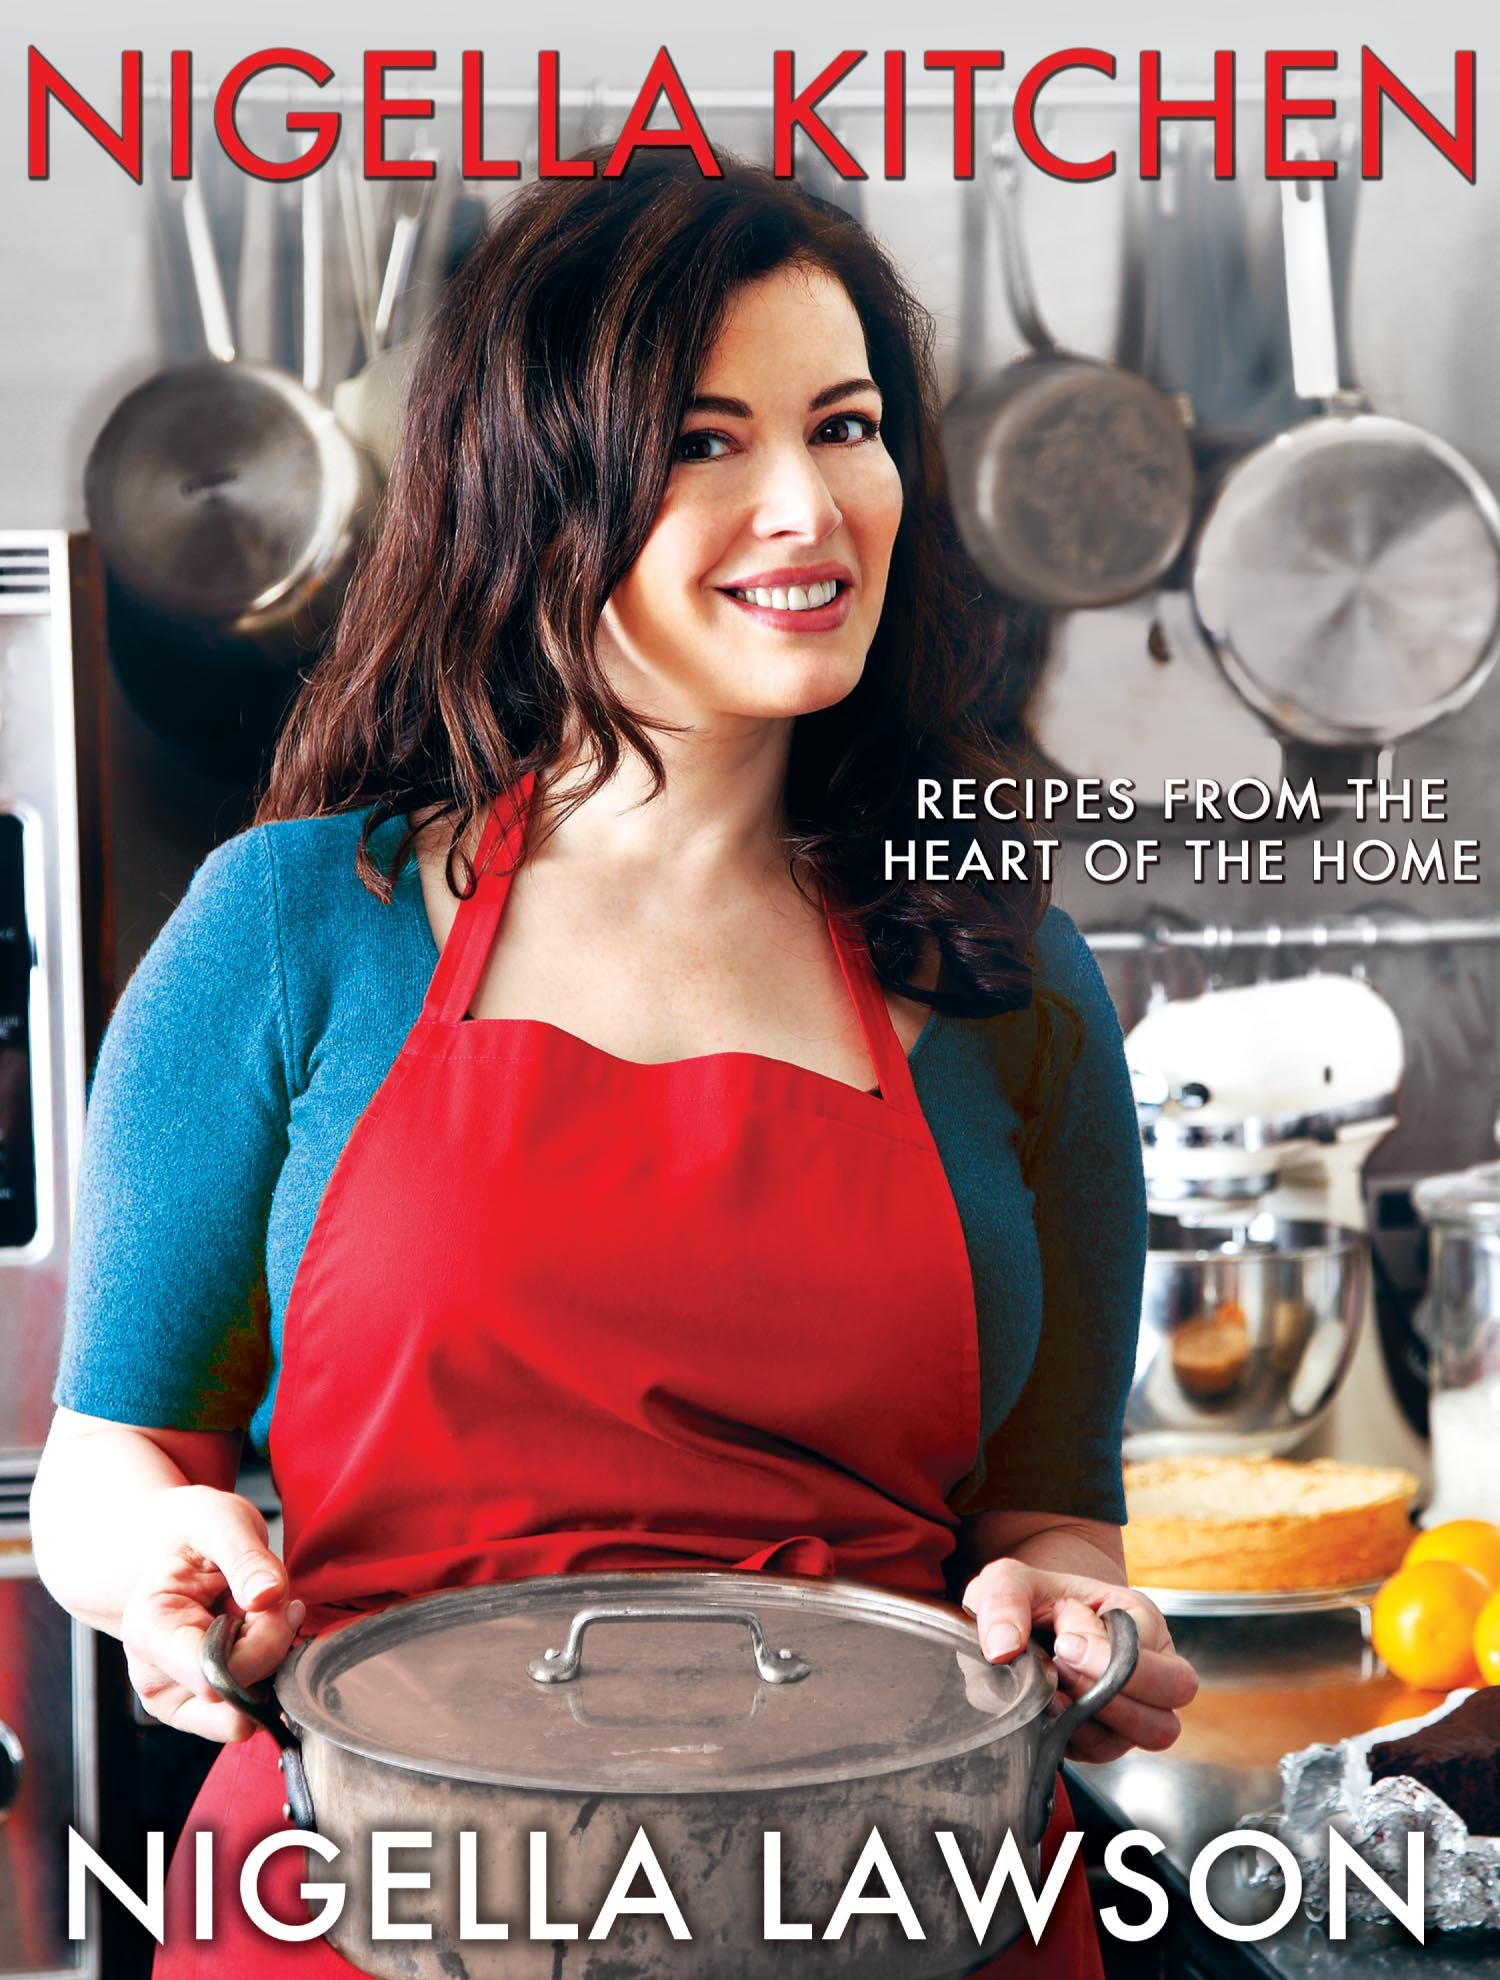 Nigella Kitchen Recipes Heart Home product image